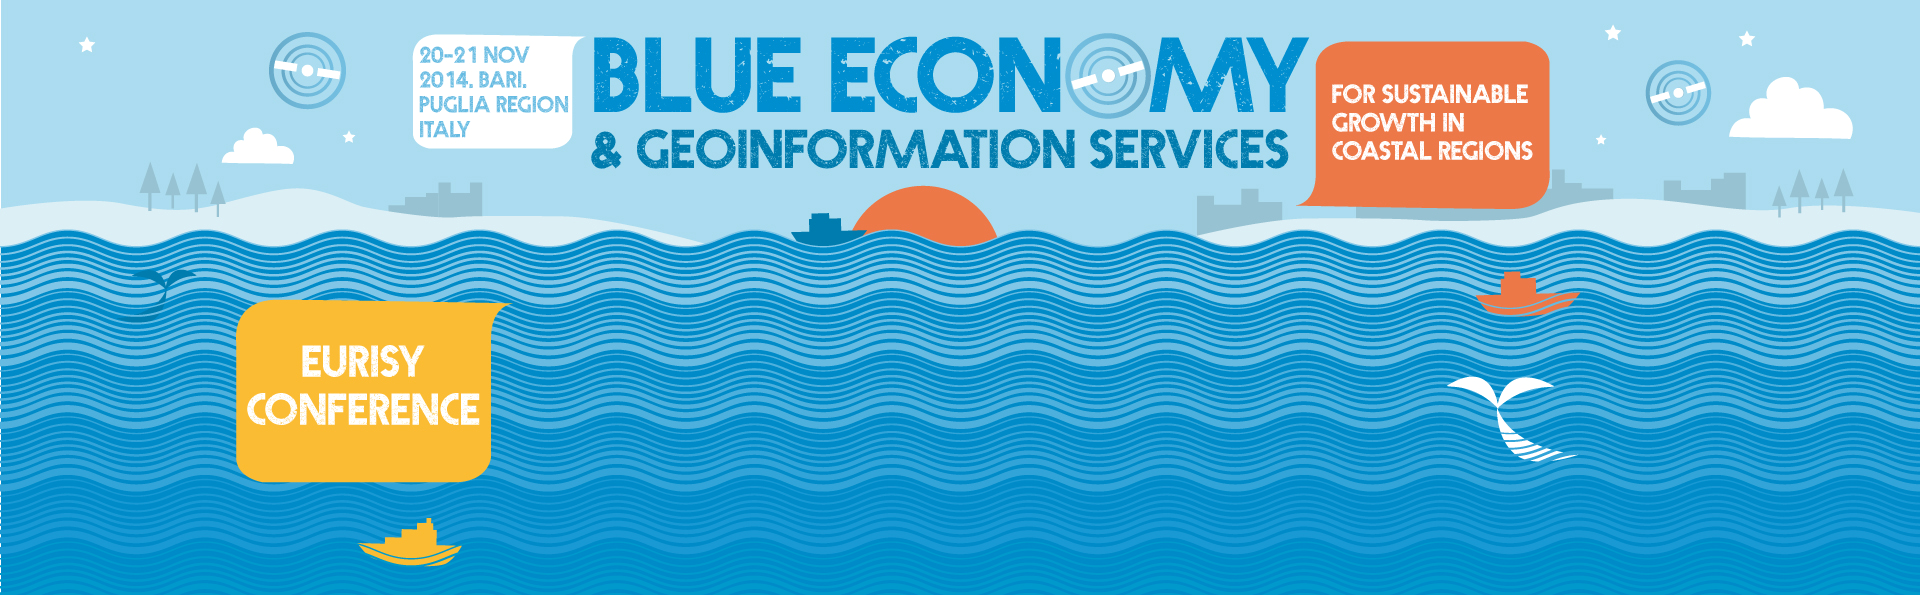 Blue Economy and geoinformation services for sustainable growth in coastal regions